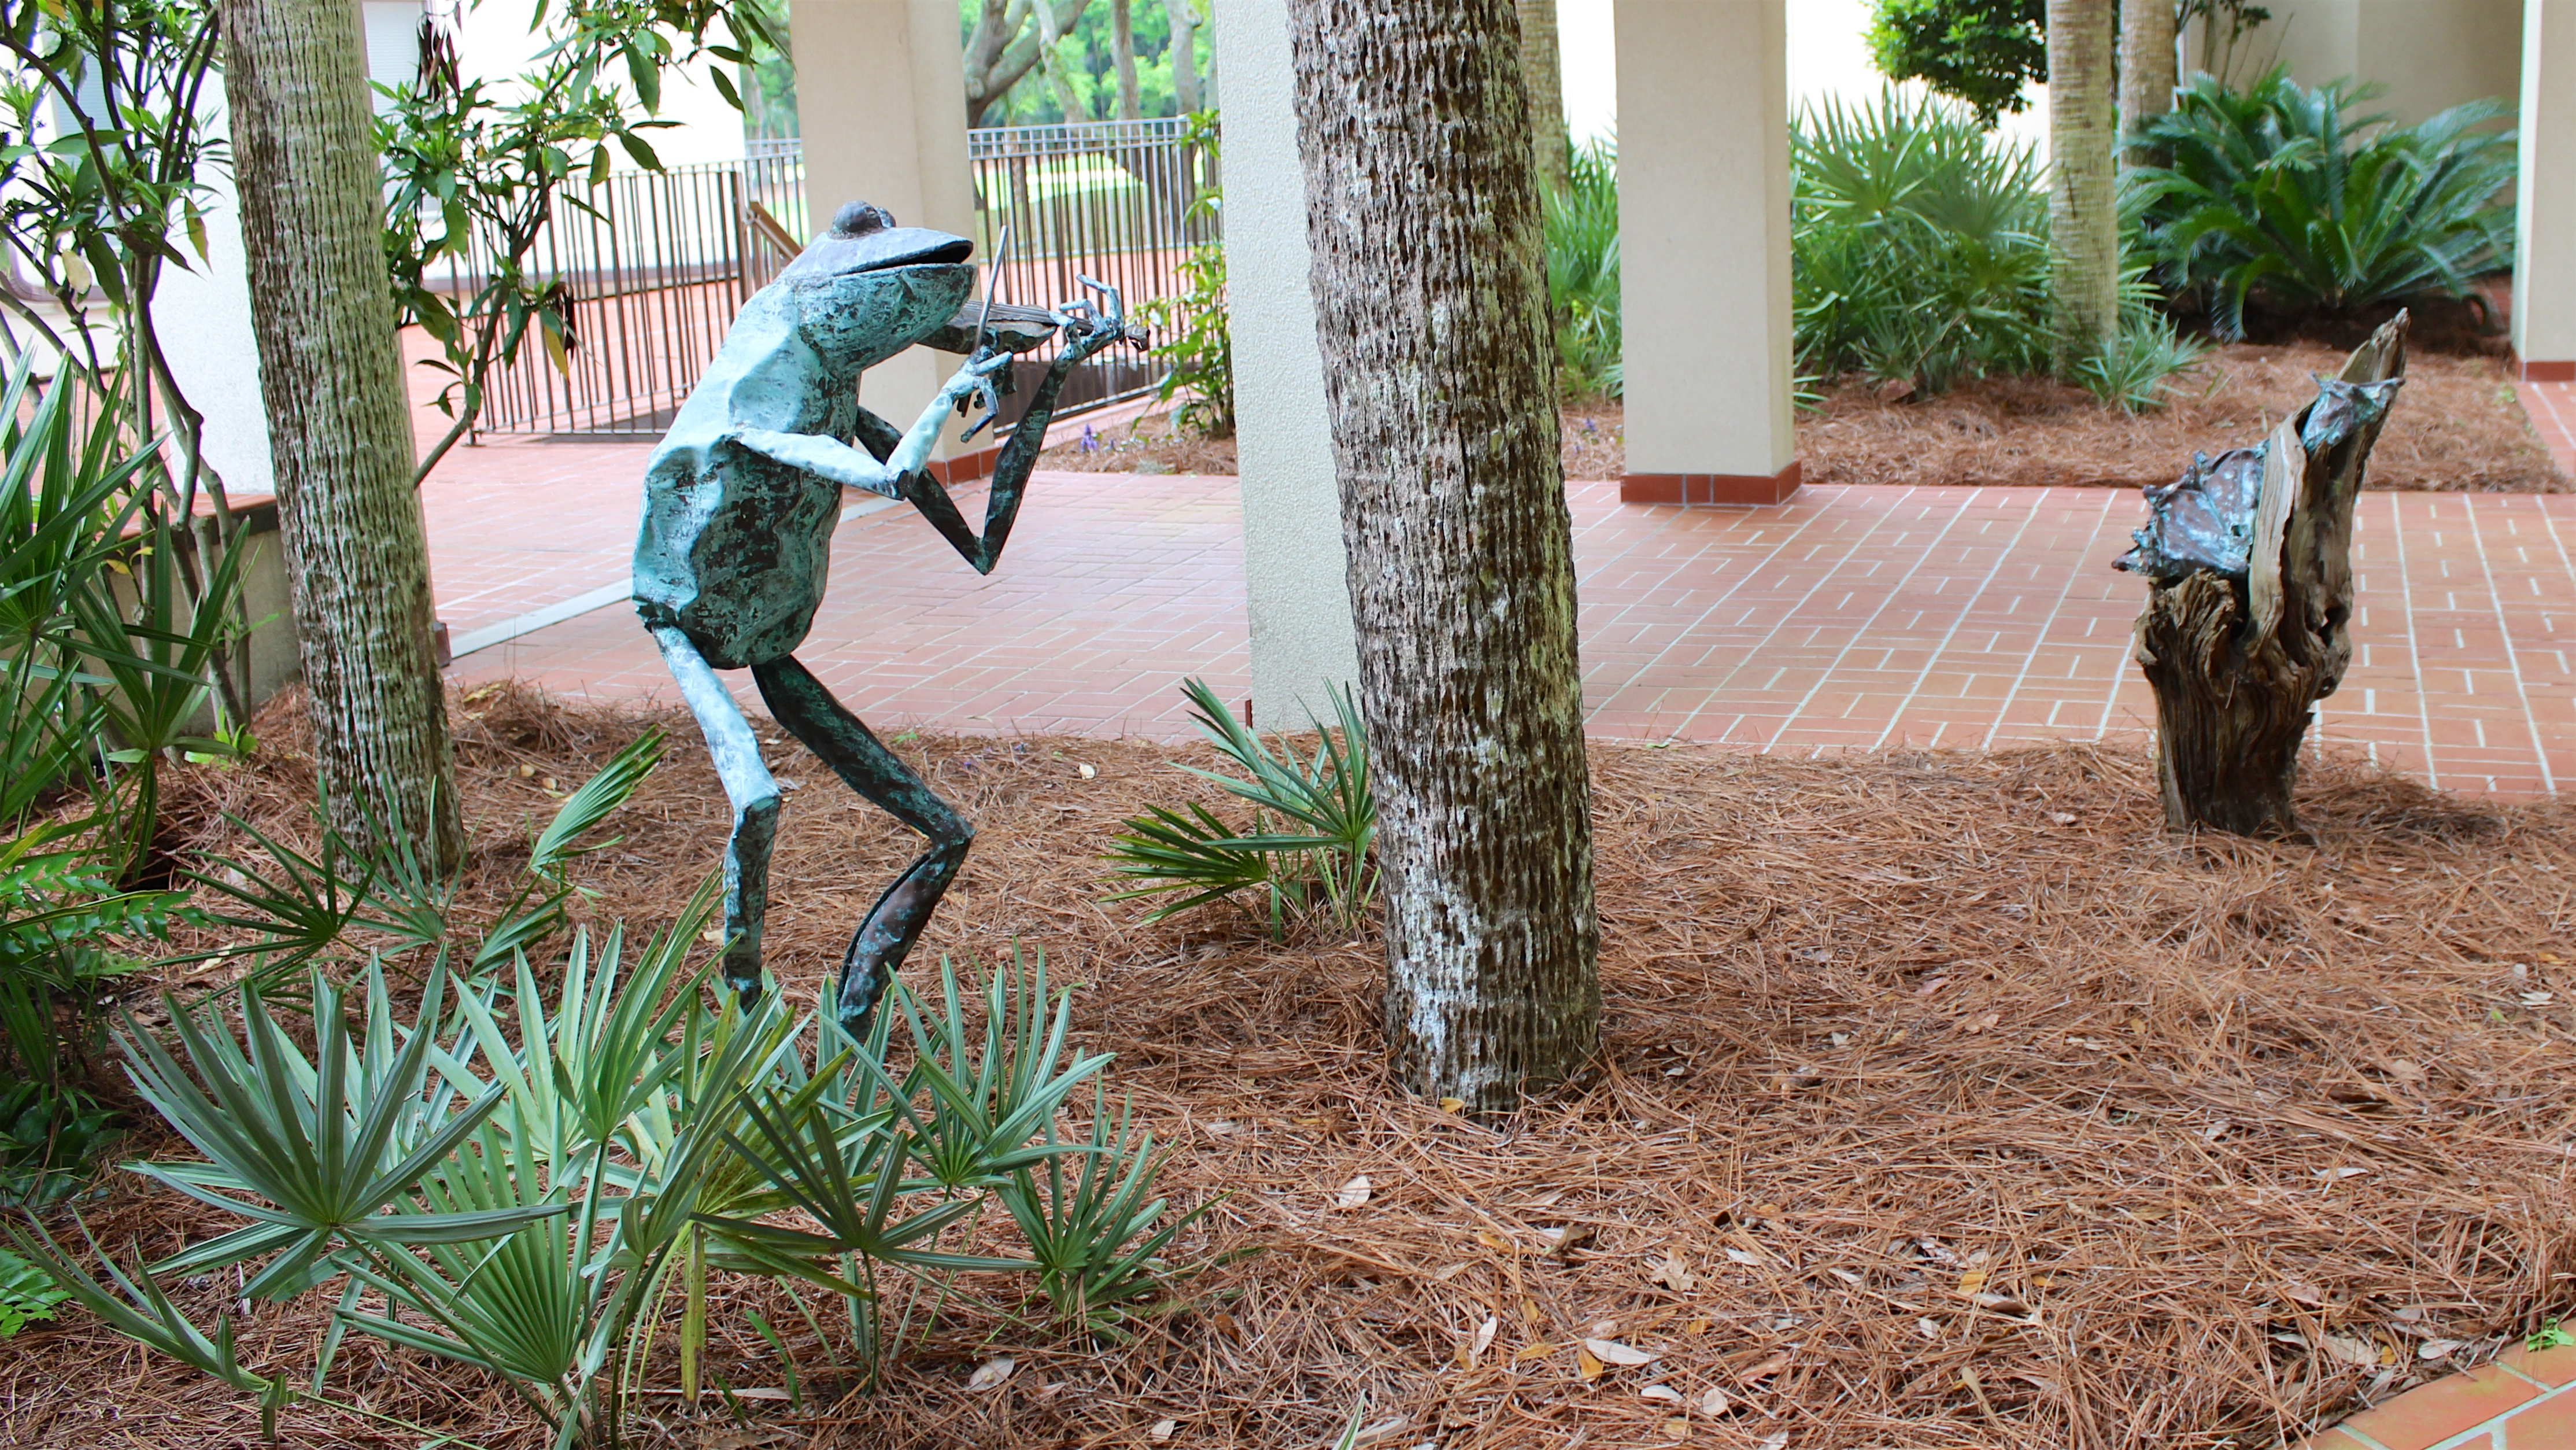 You will love the whimsical bronze statues that grace the courtyard.